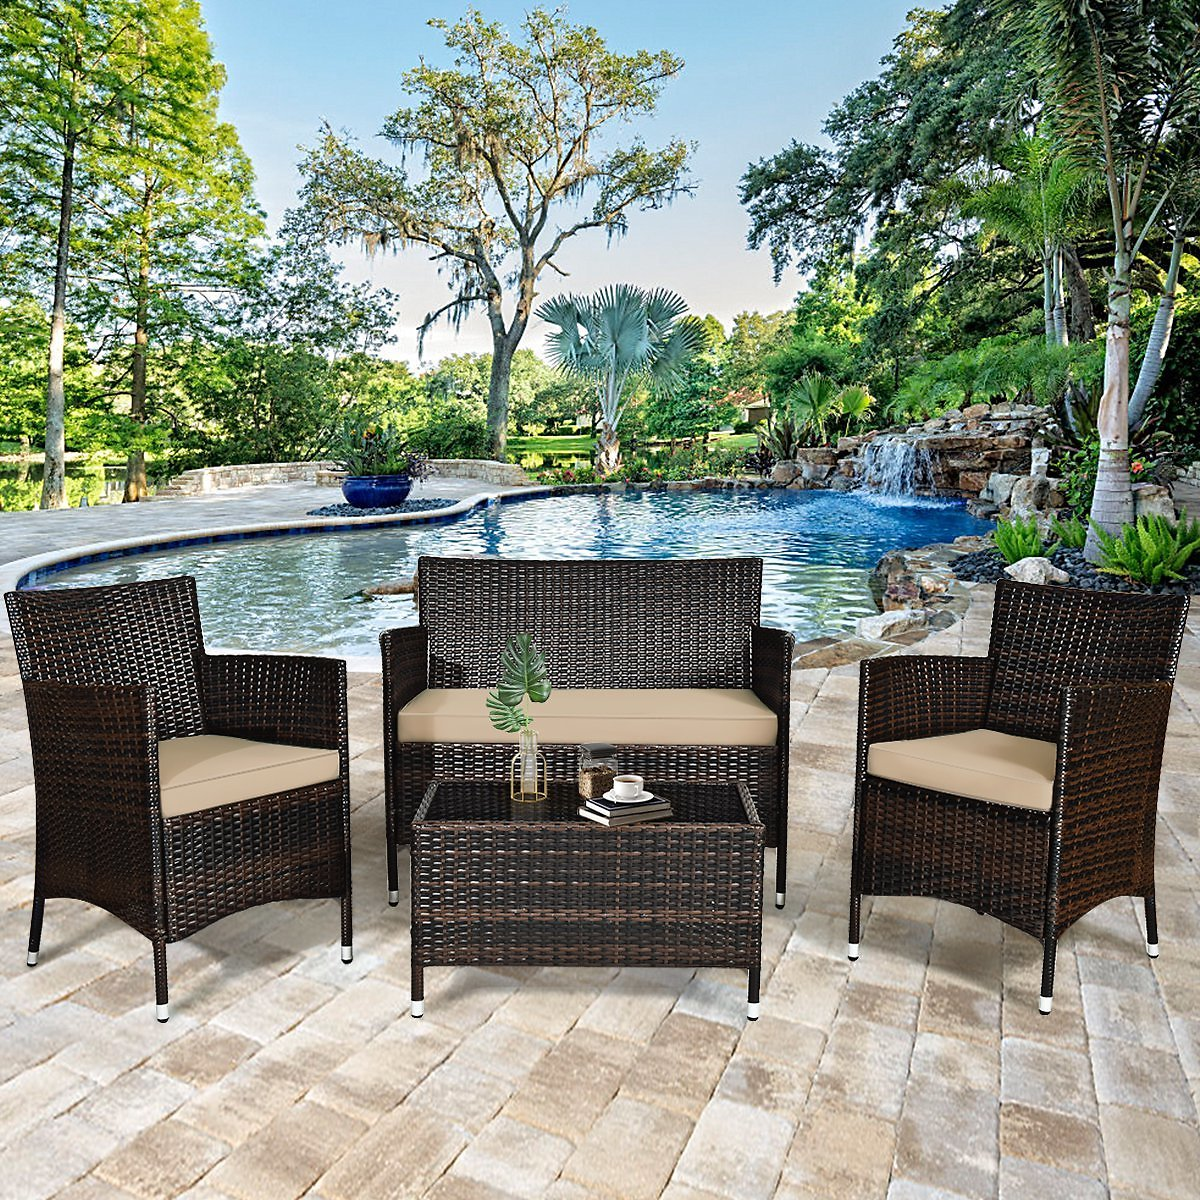 Gymax 4PCS Patio Rattan Outdoor Furniture Set w/ Cushioned Chair Loveseat Table